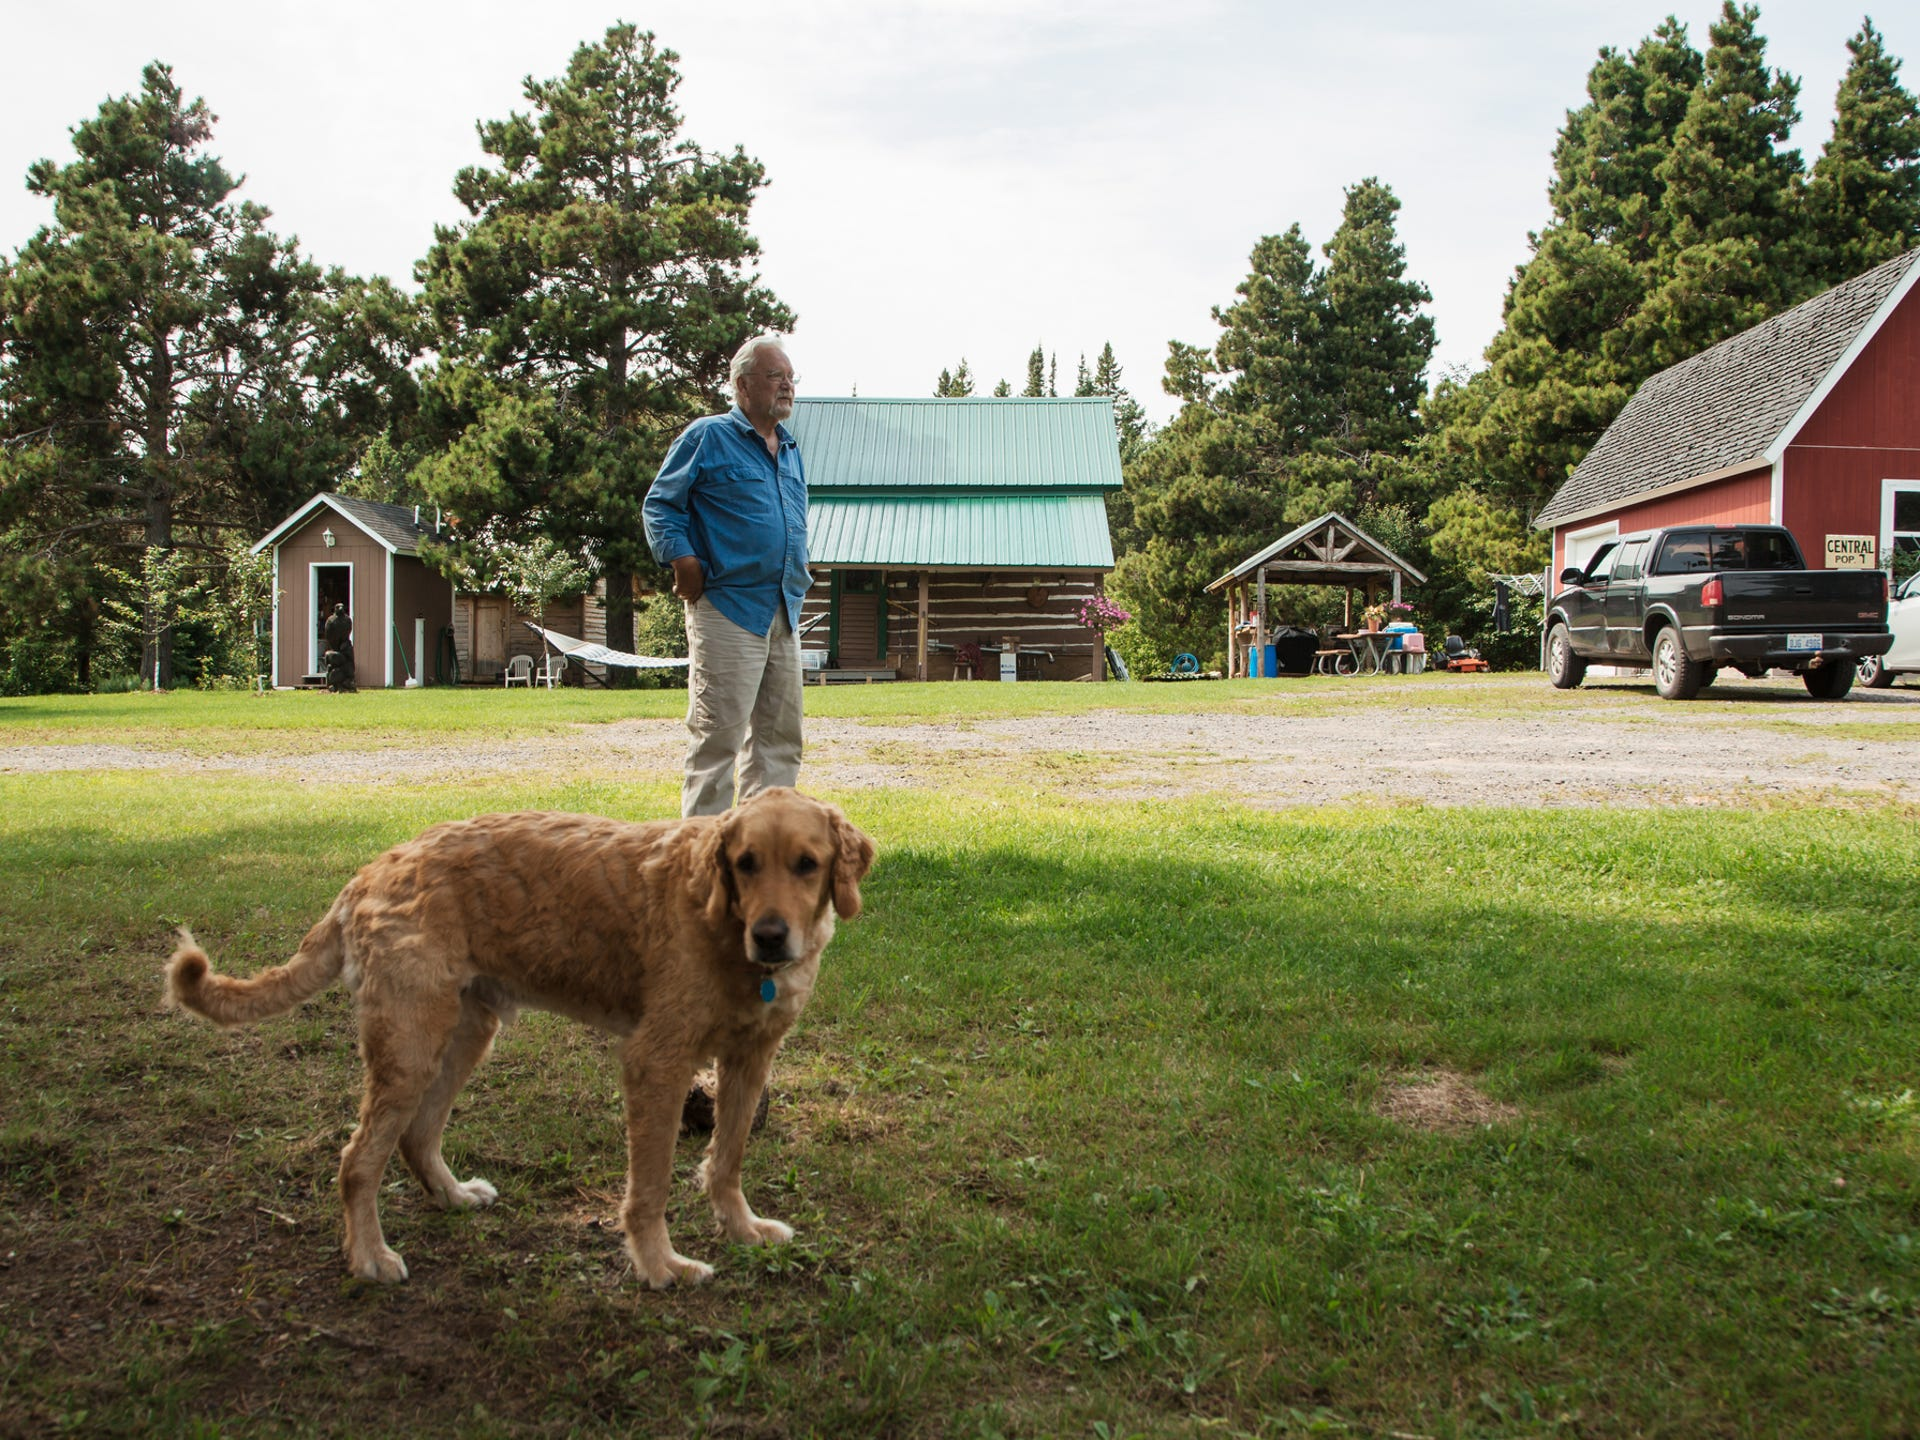 Jim Vivian, 74, stands with his dog in front of the